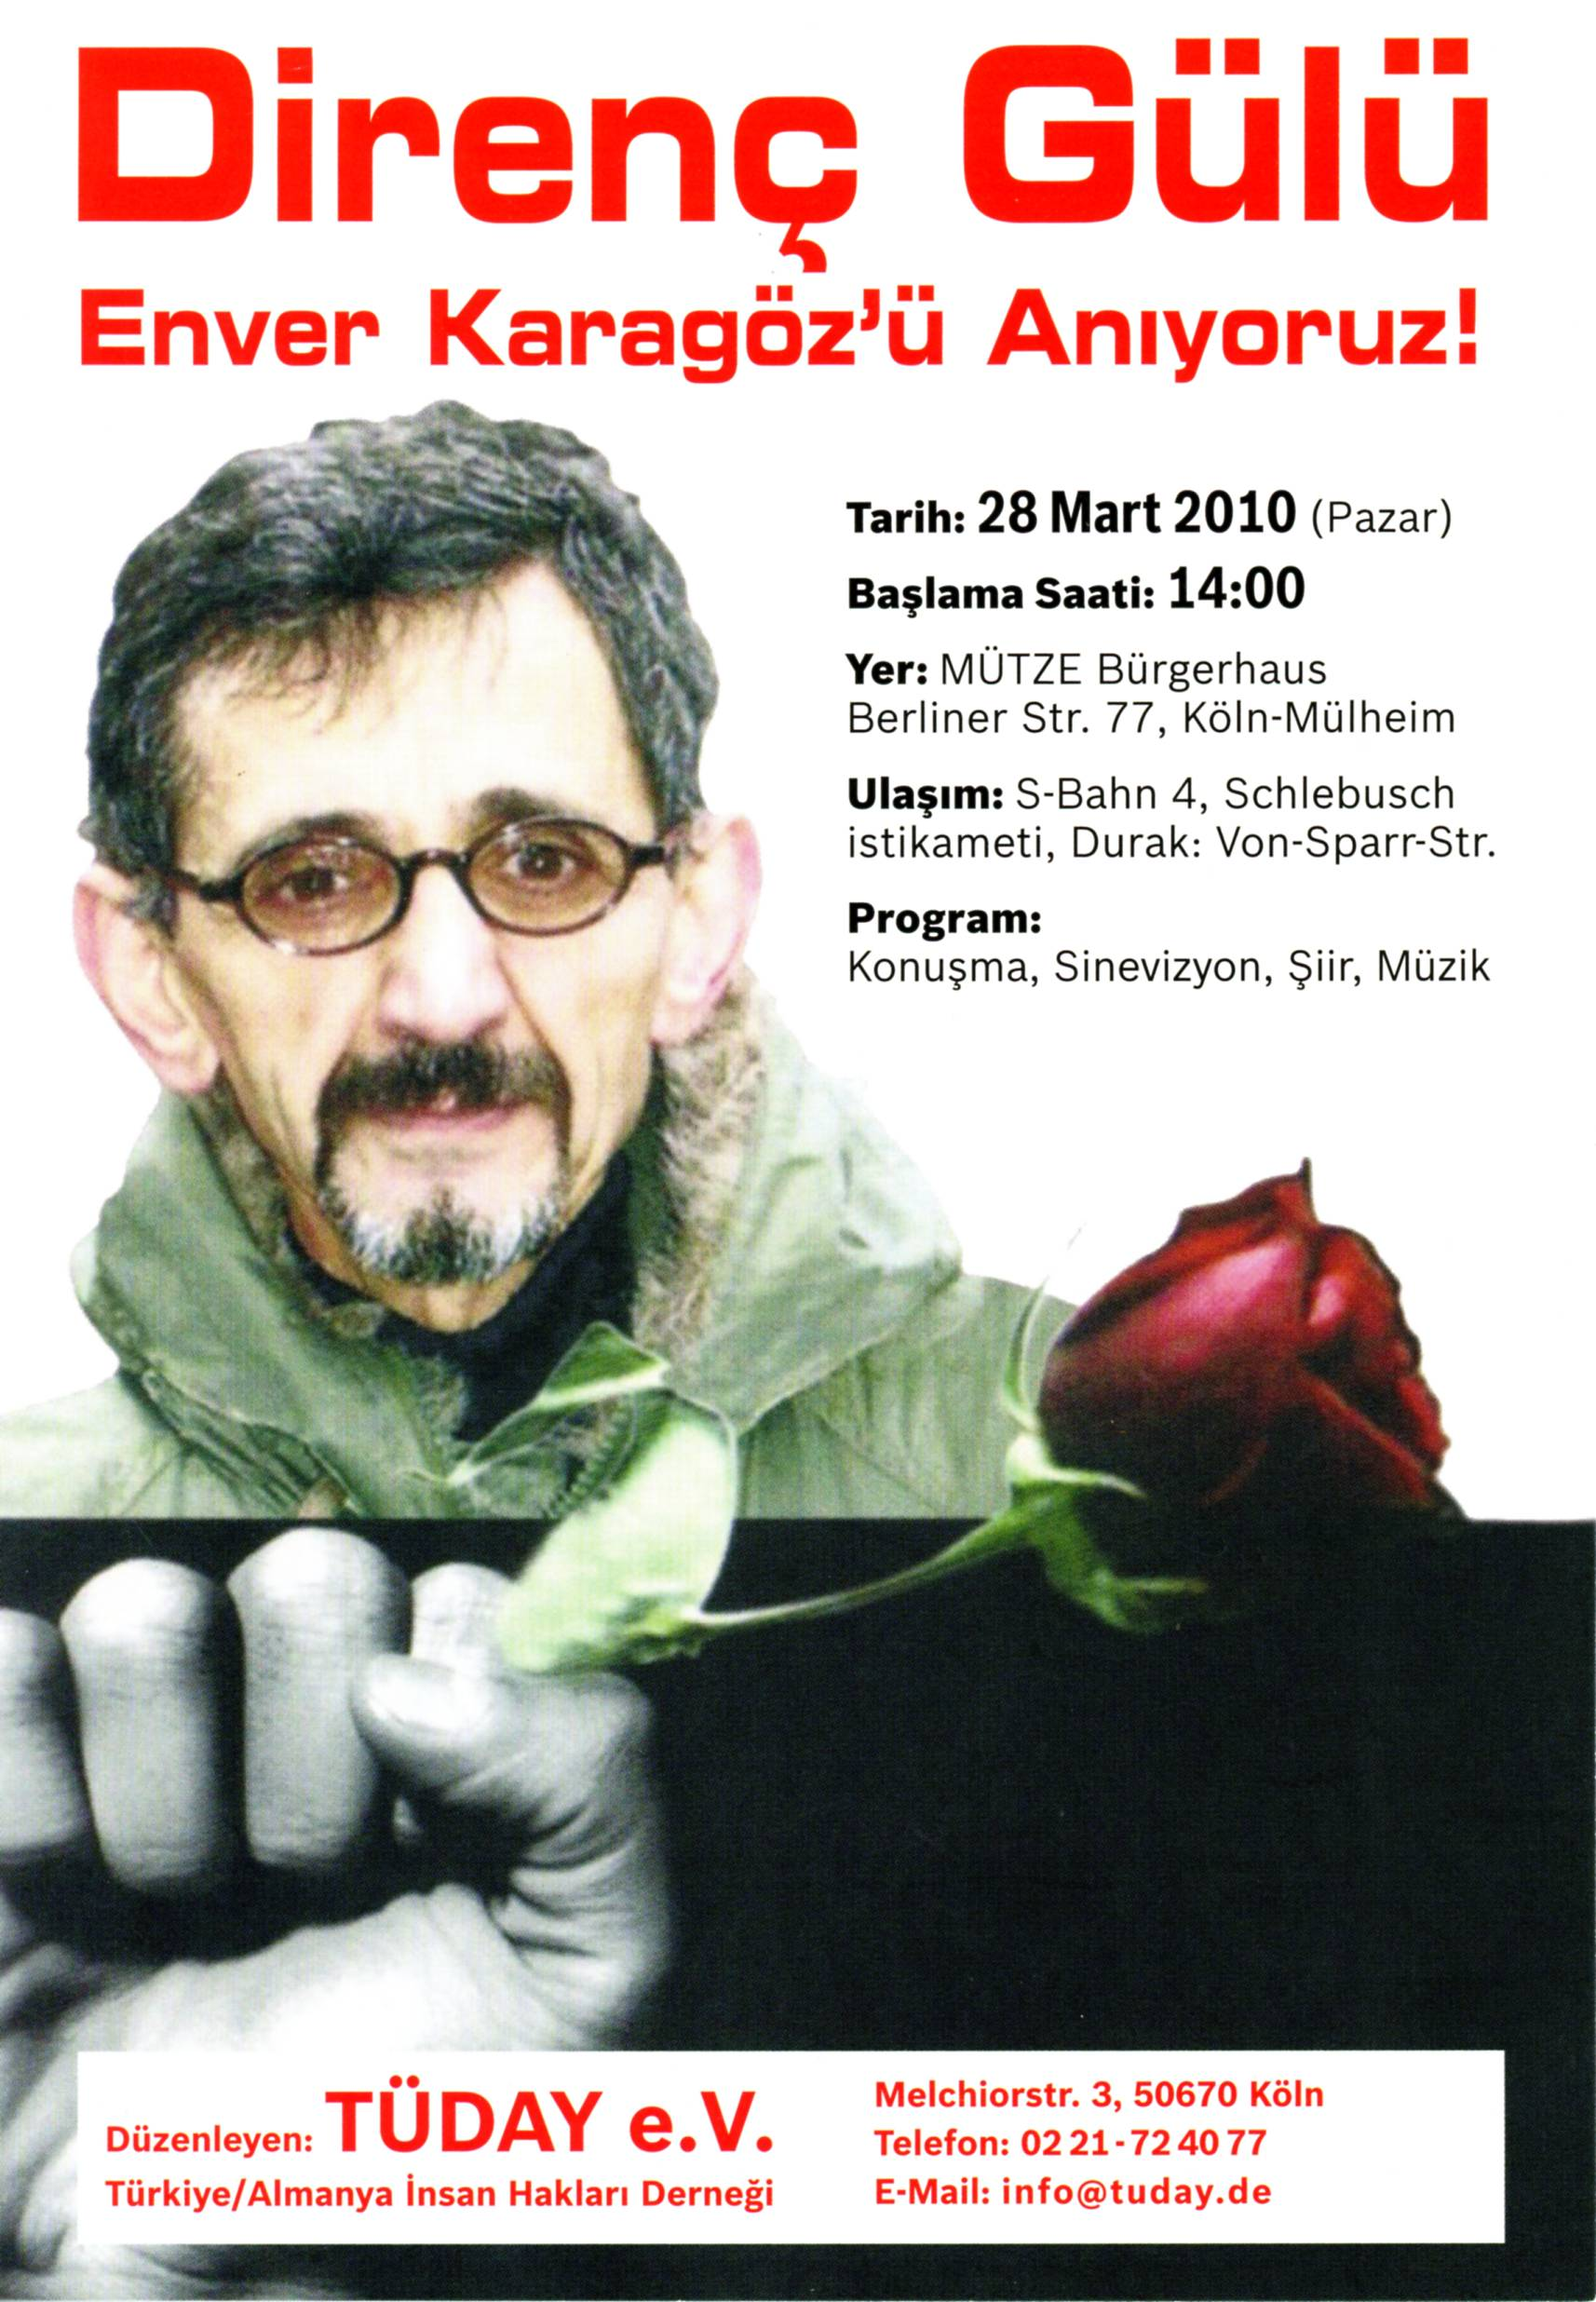 Flyer for a memorial service commemorating the death of human rights activist Enver Karagöz, Cologne, 2010 © DOMiD-Archiv, Köln, E 1139,0044